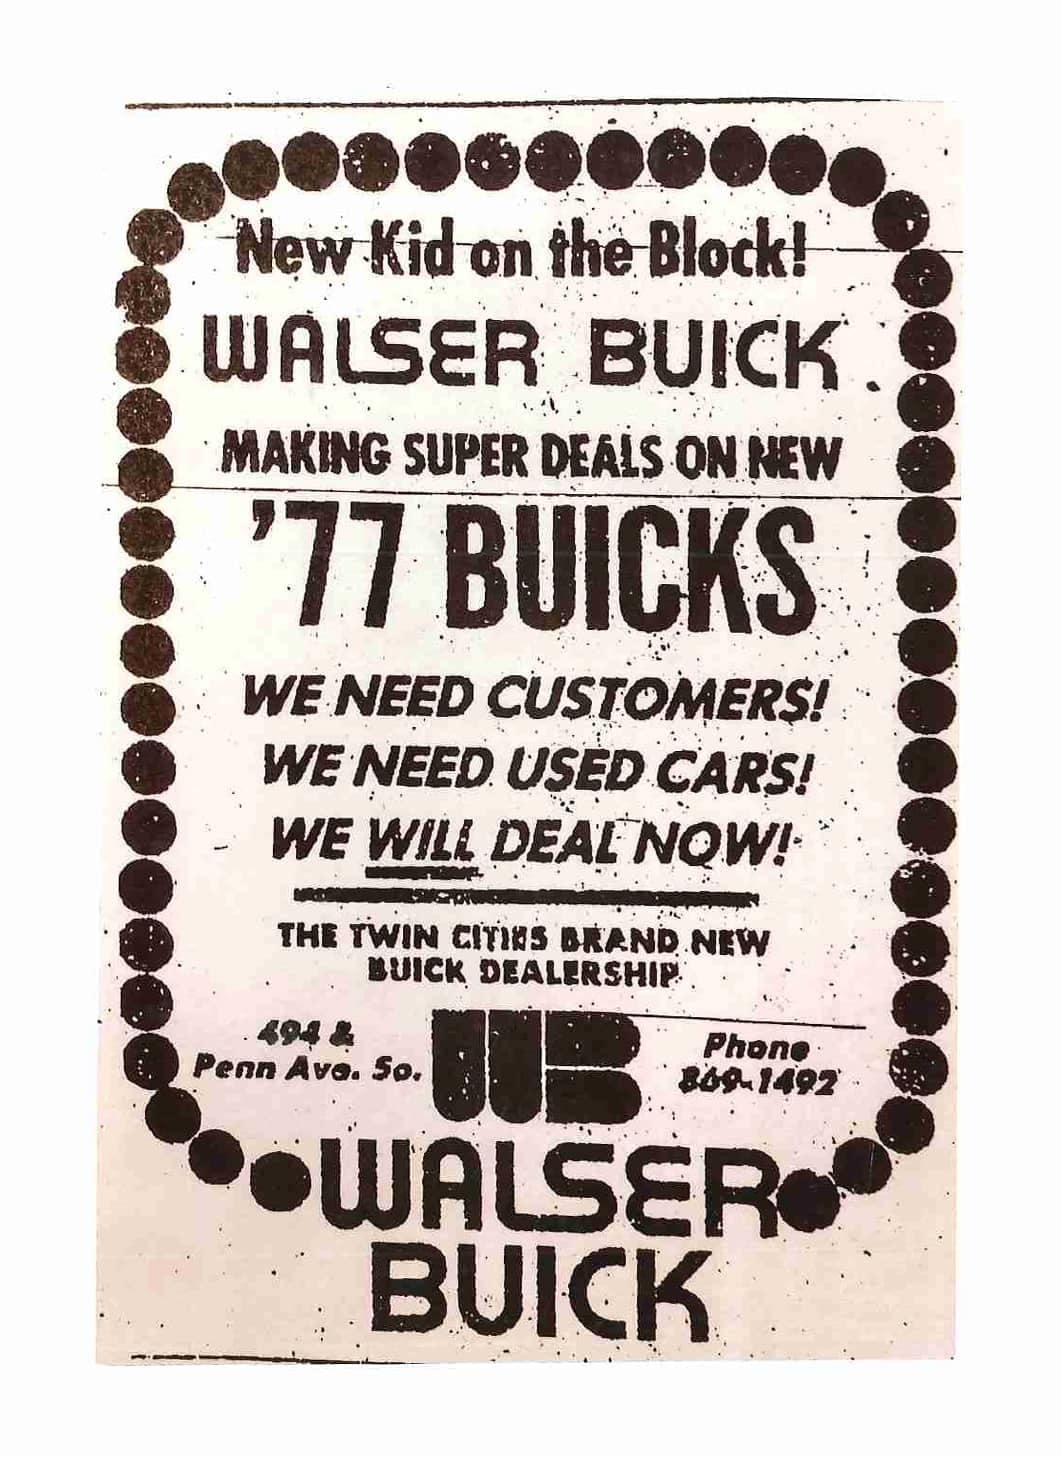 Walser Buick Ad from 1976